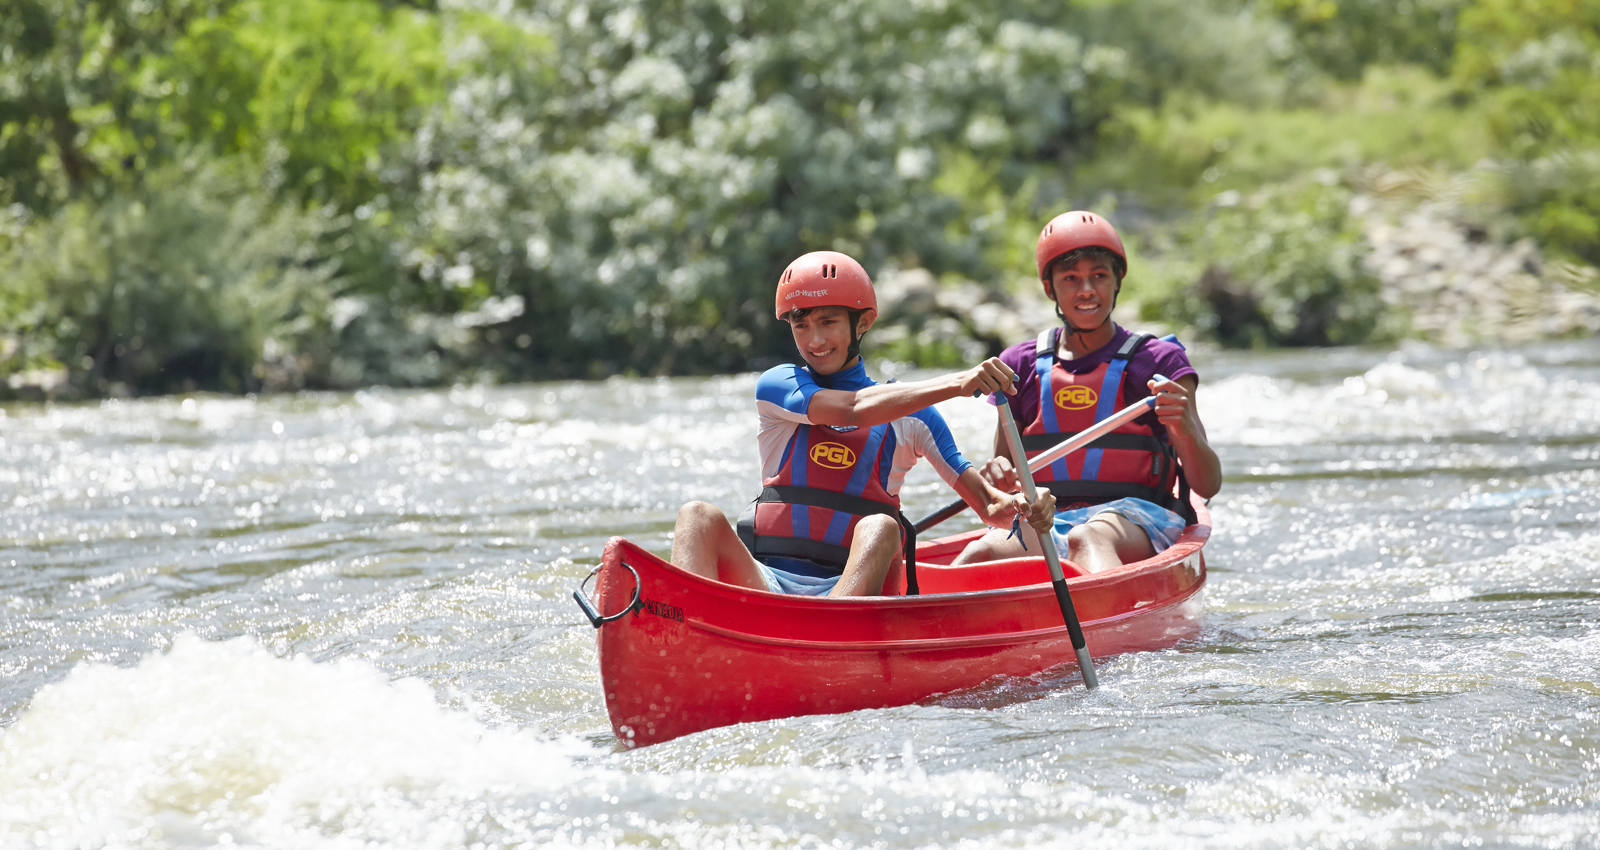 PGL Adventure Holidays, Multi-Activity and Specialist Holidays and Summer Camps for 7-17 year olds across the UK and France